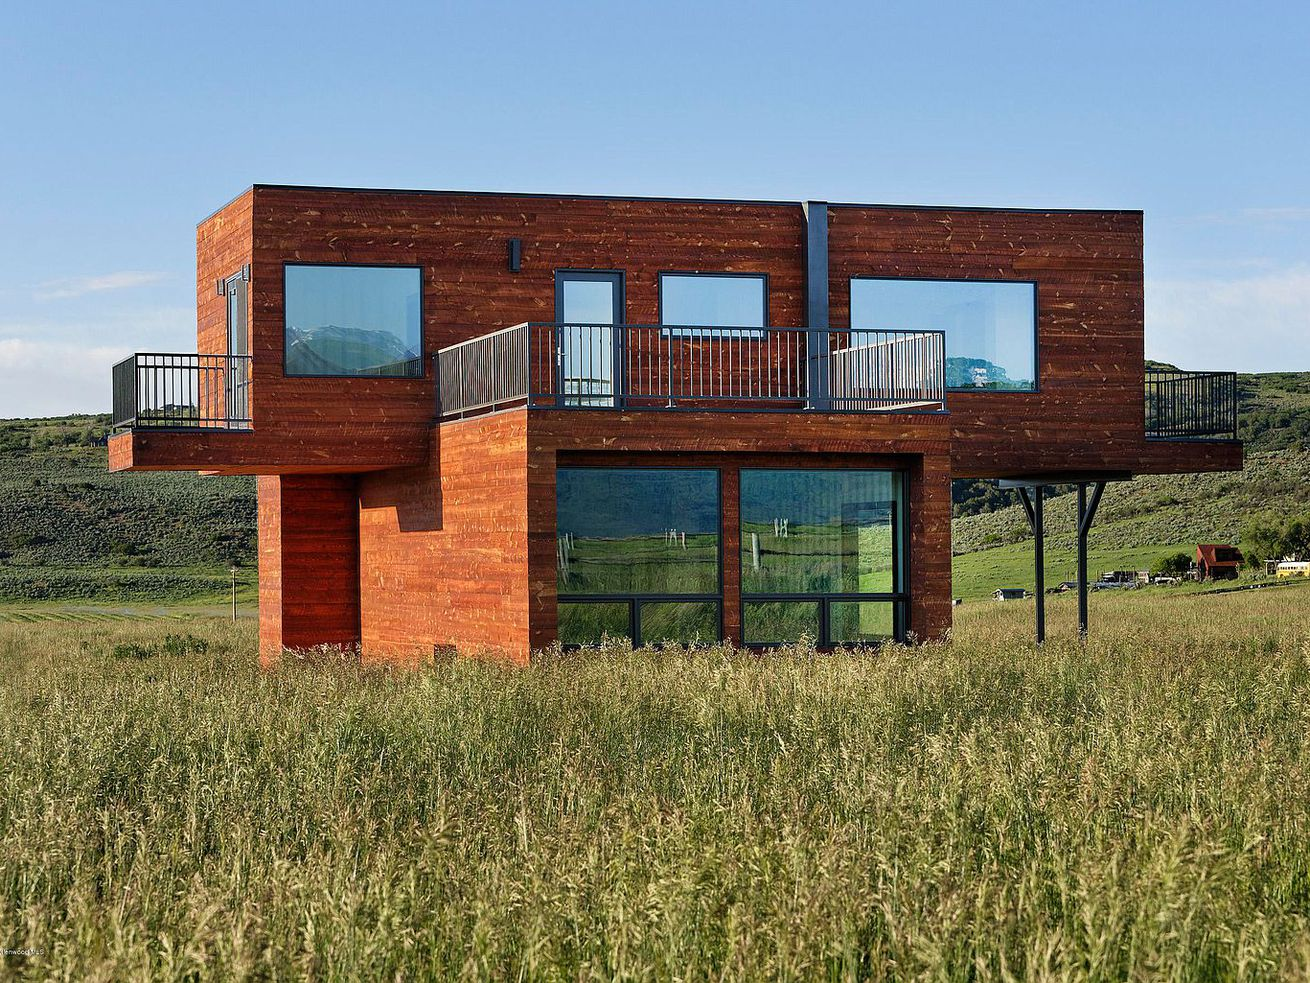 Wood-covered container home on grassy land.